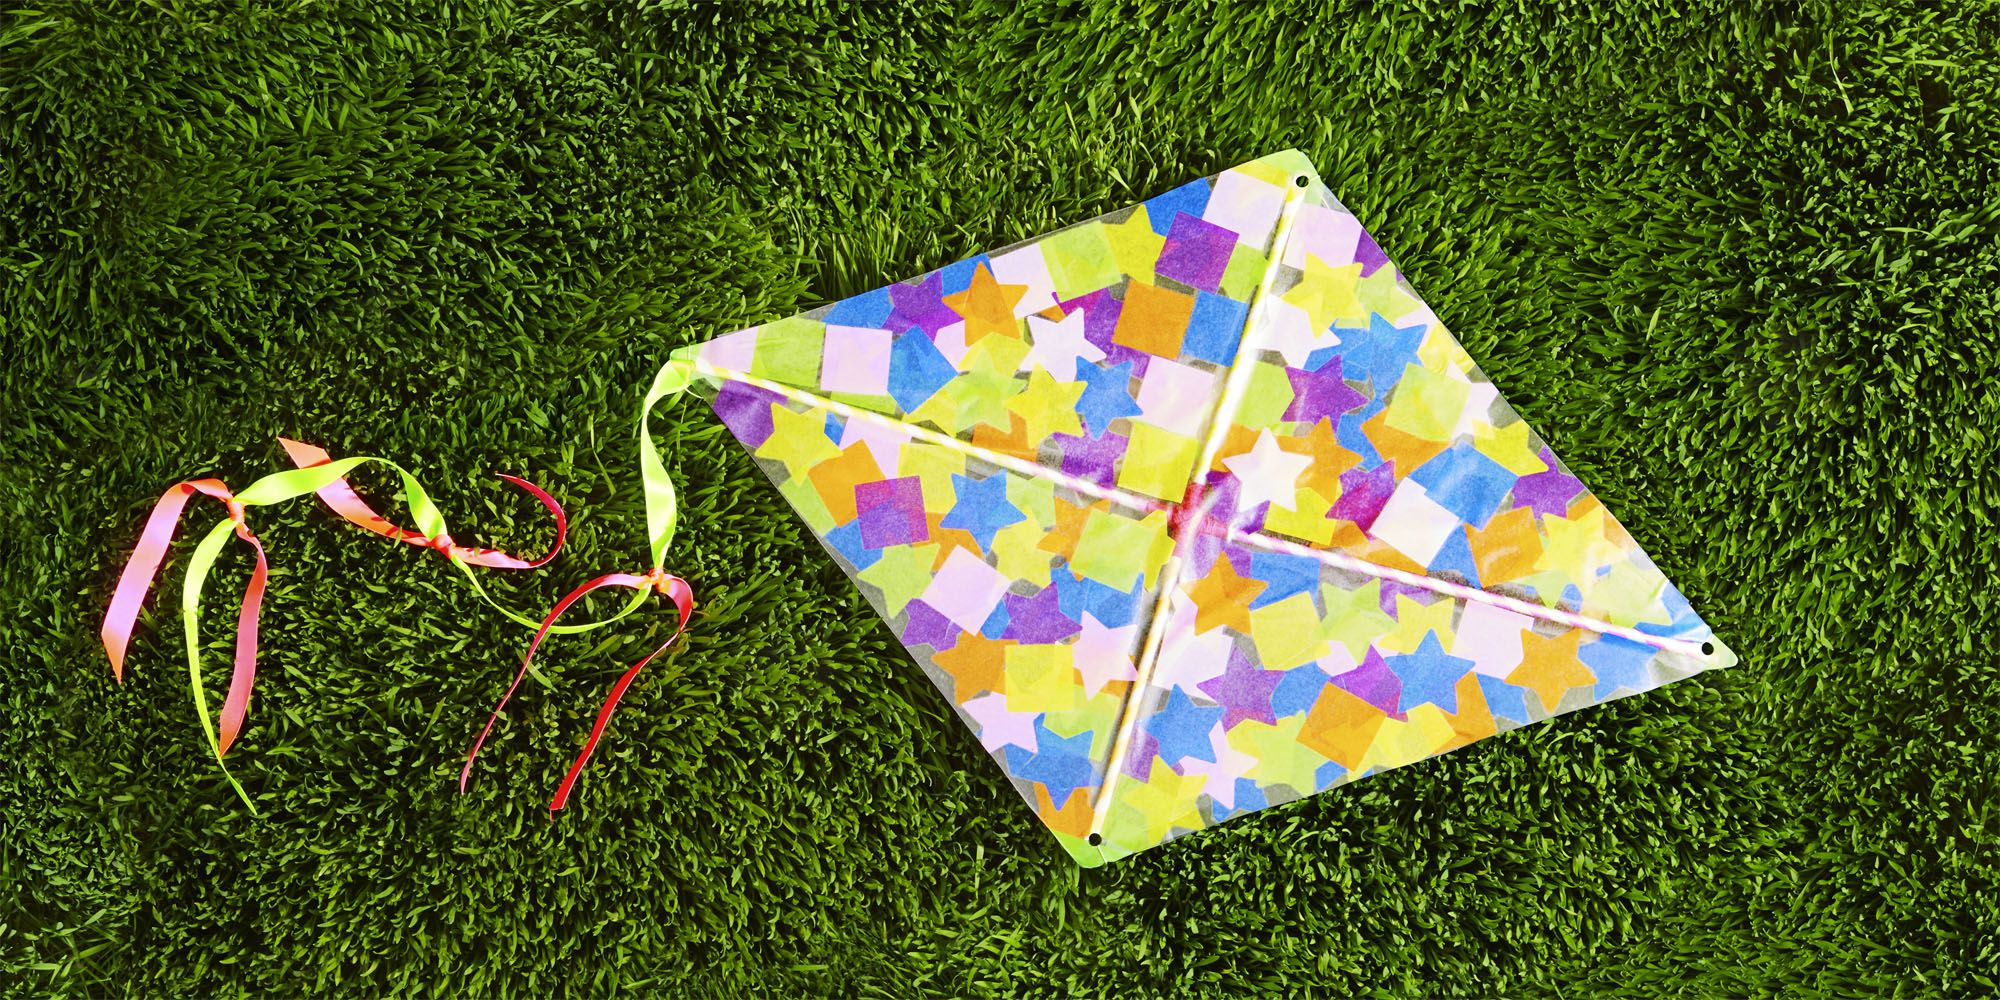 How to Make a Kite - Make Your Own DIY Kite